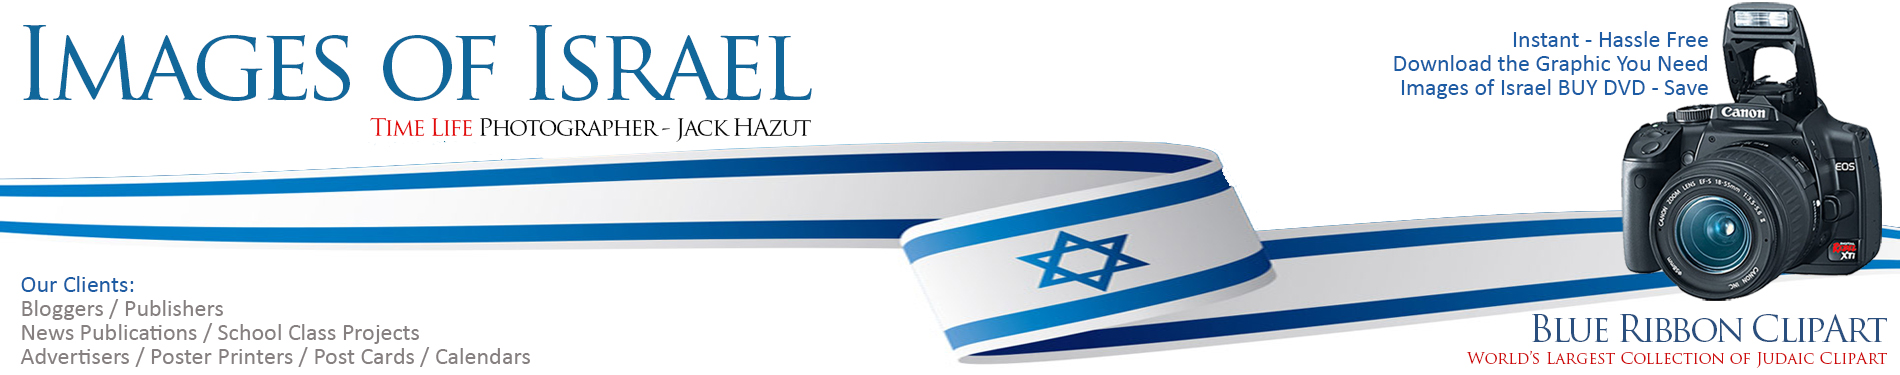 Israel Graphics